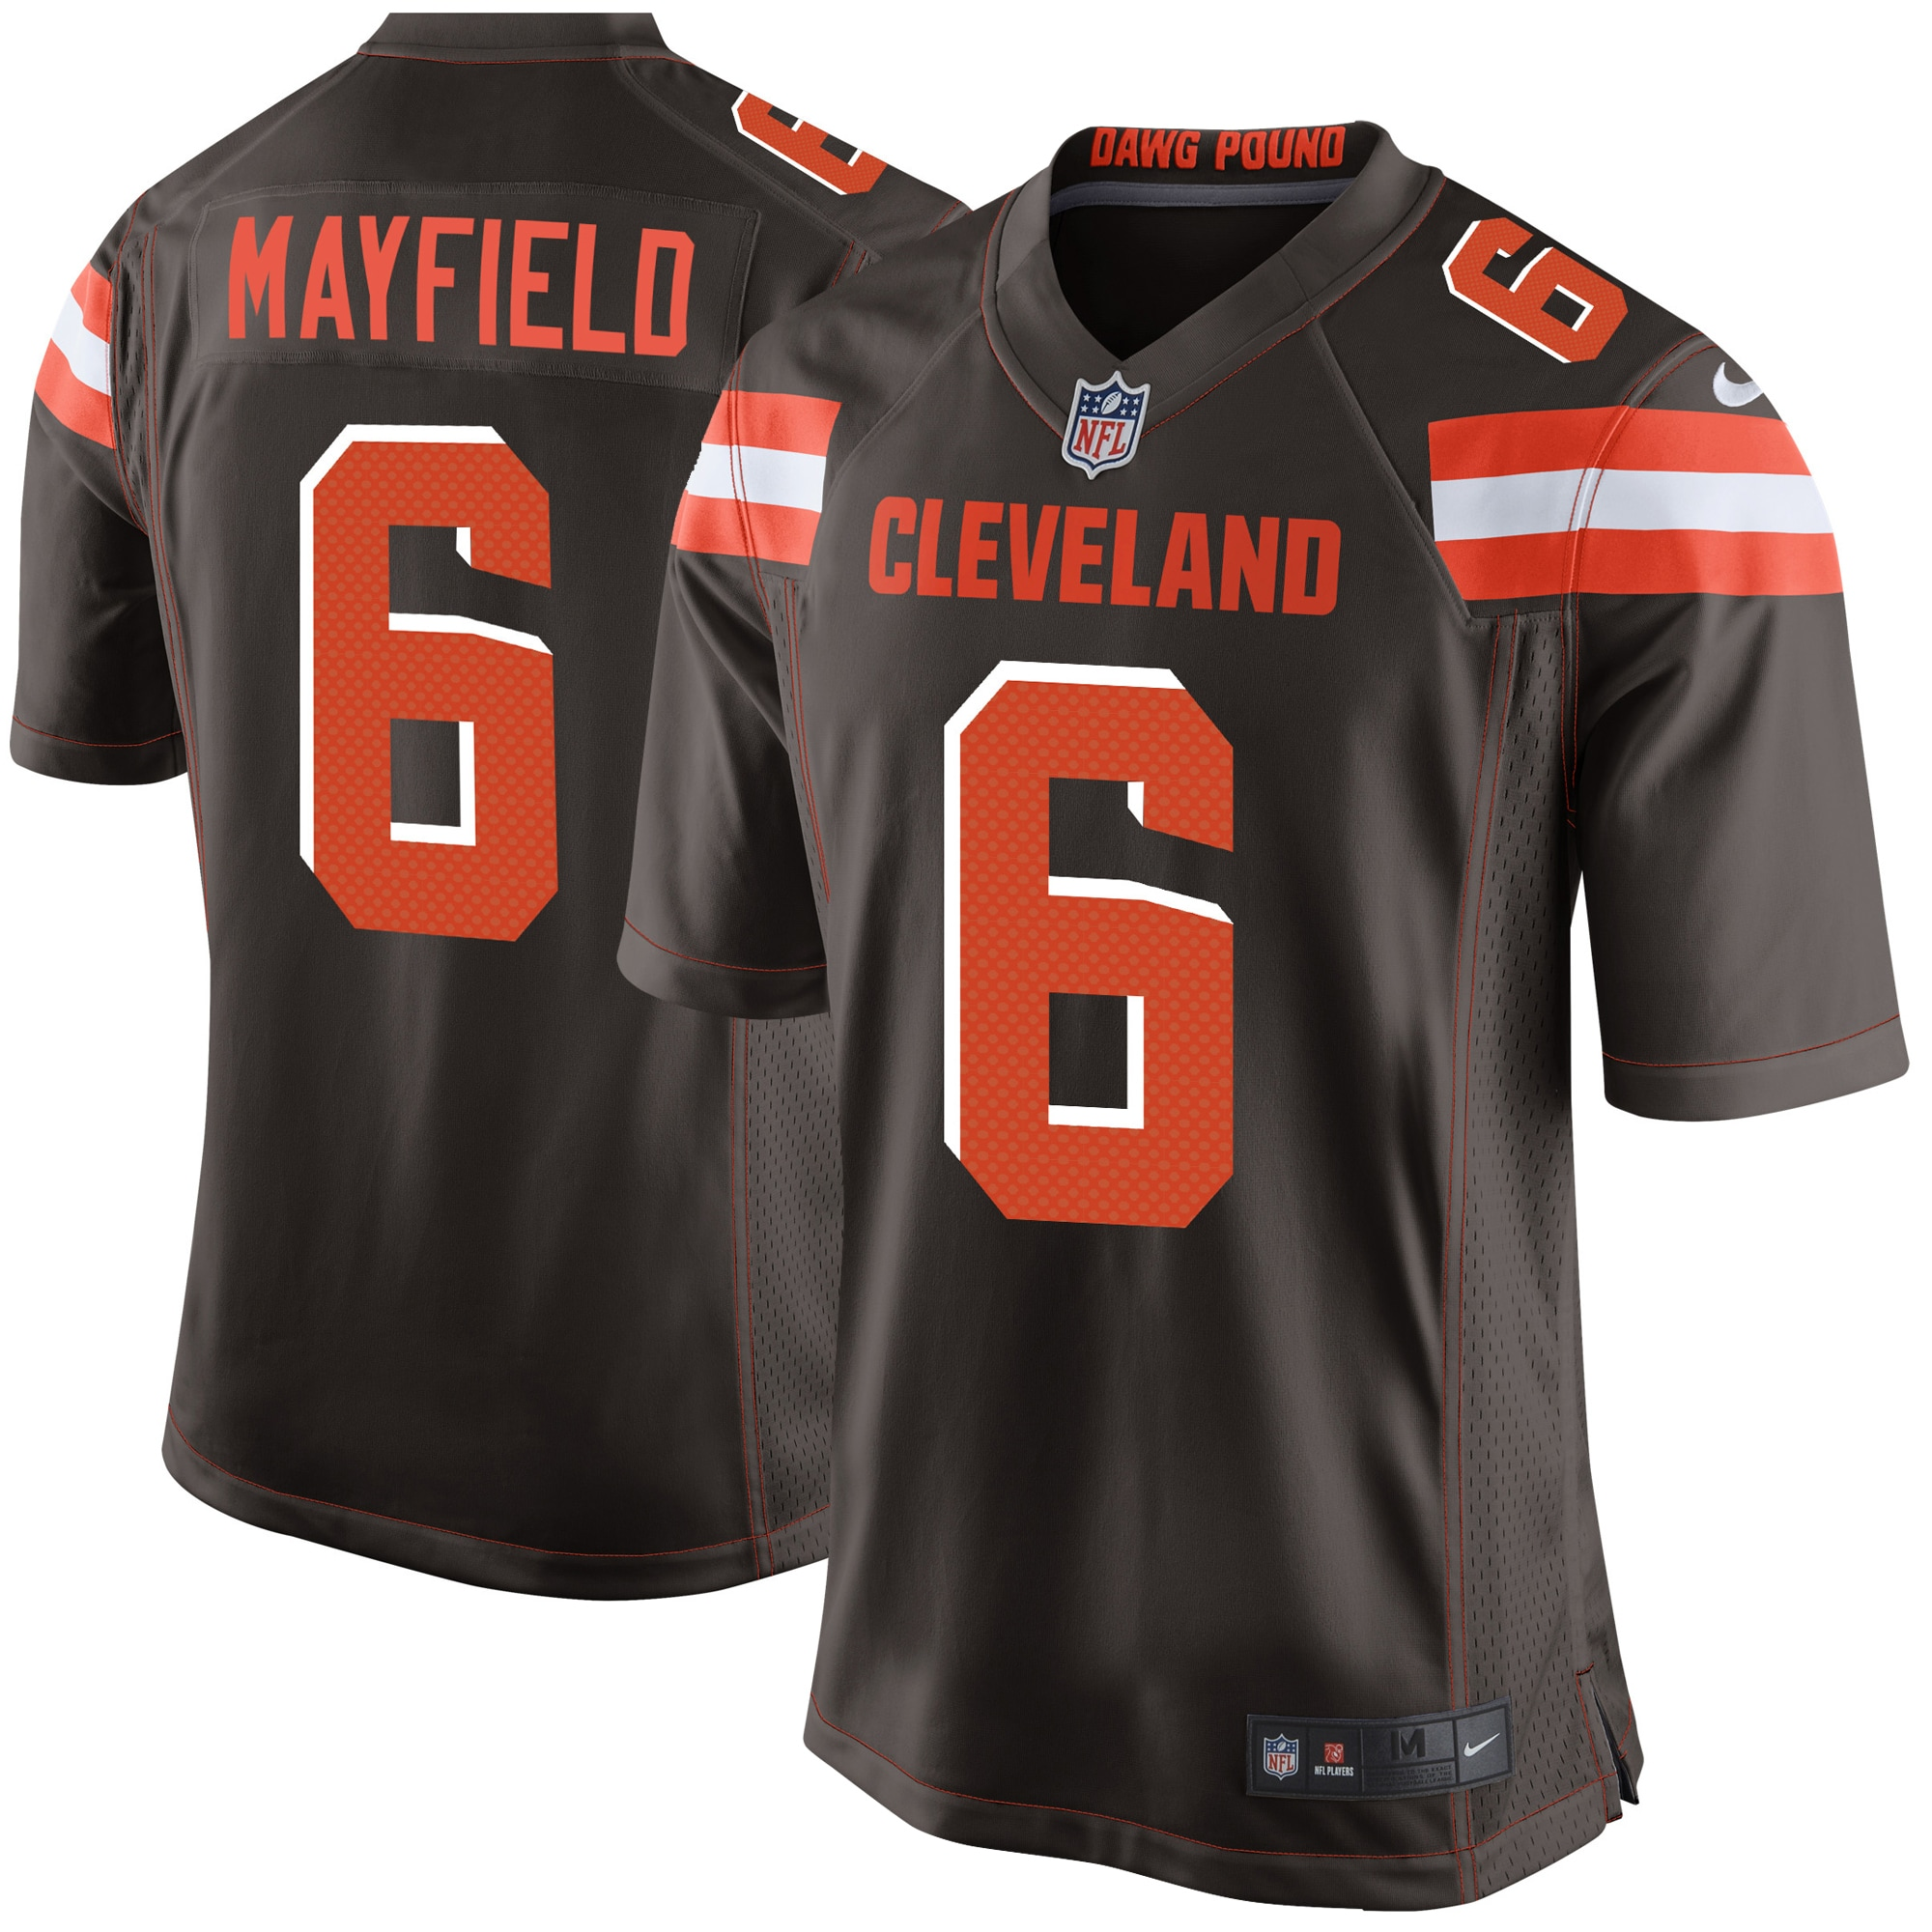 buy browns jersey